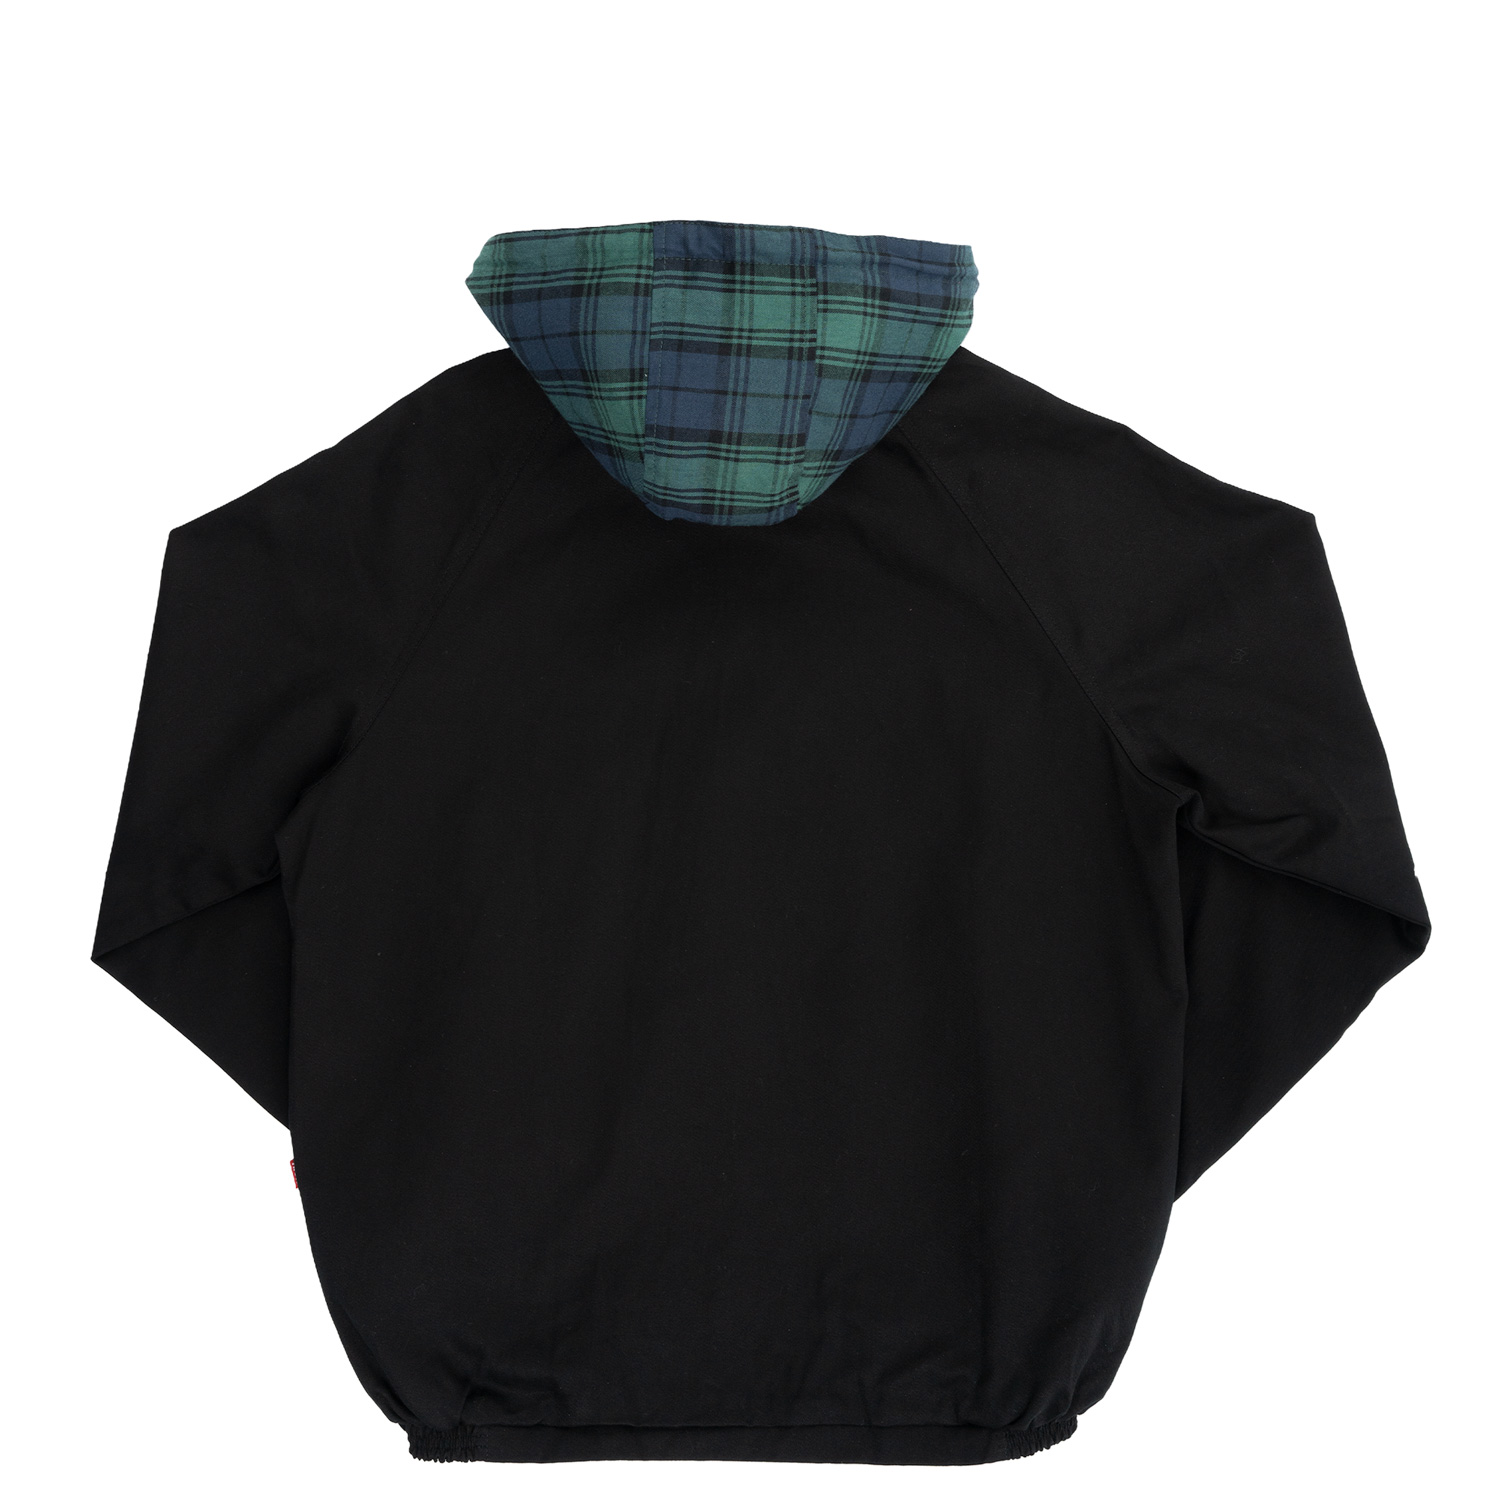 Harrington_Jacket_Compagnia_Black